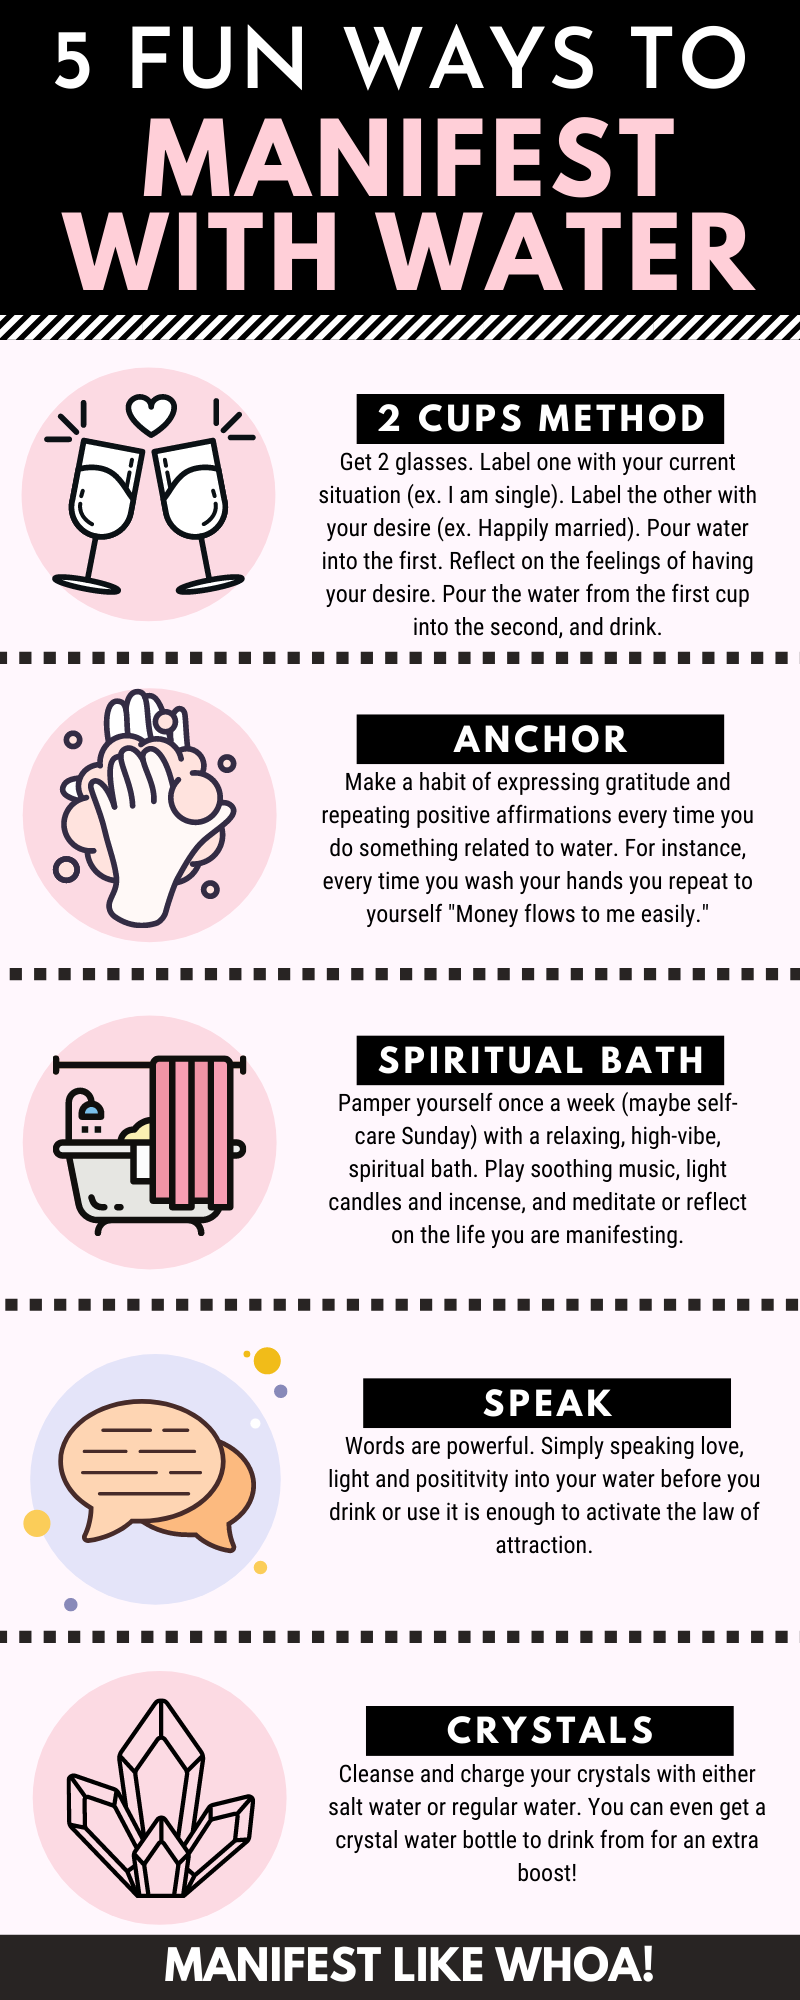 5 Top-Secret Ways To Manifest With Water Overnight